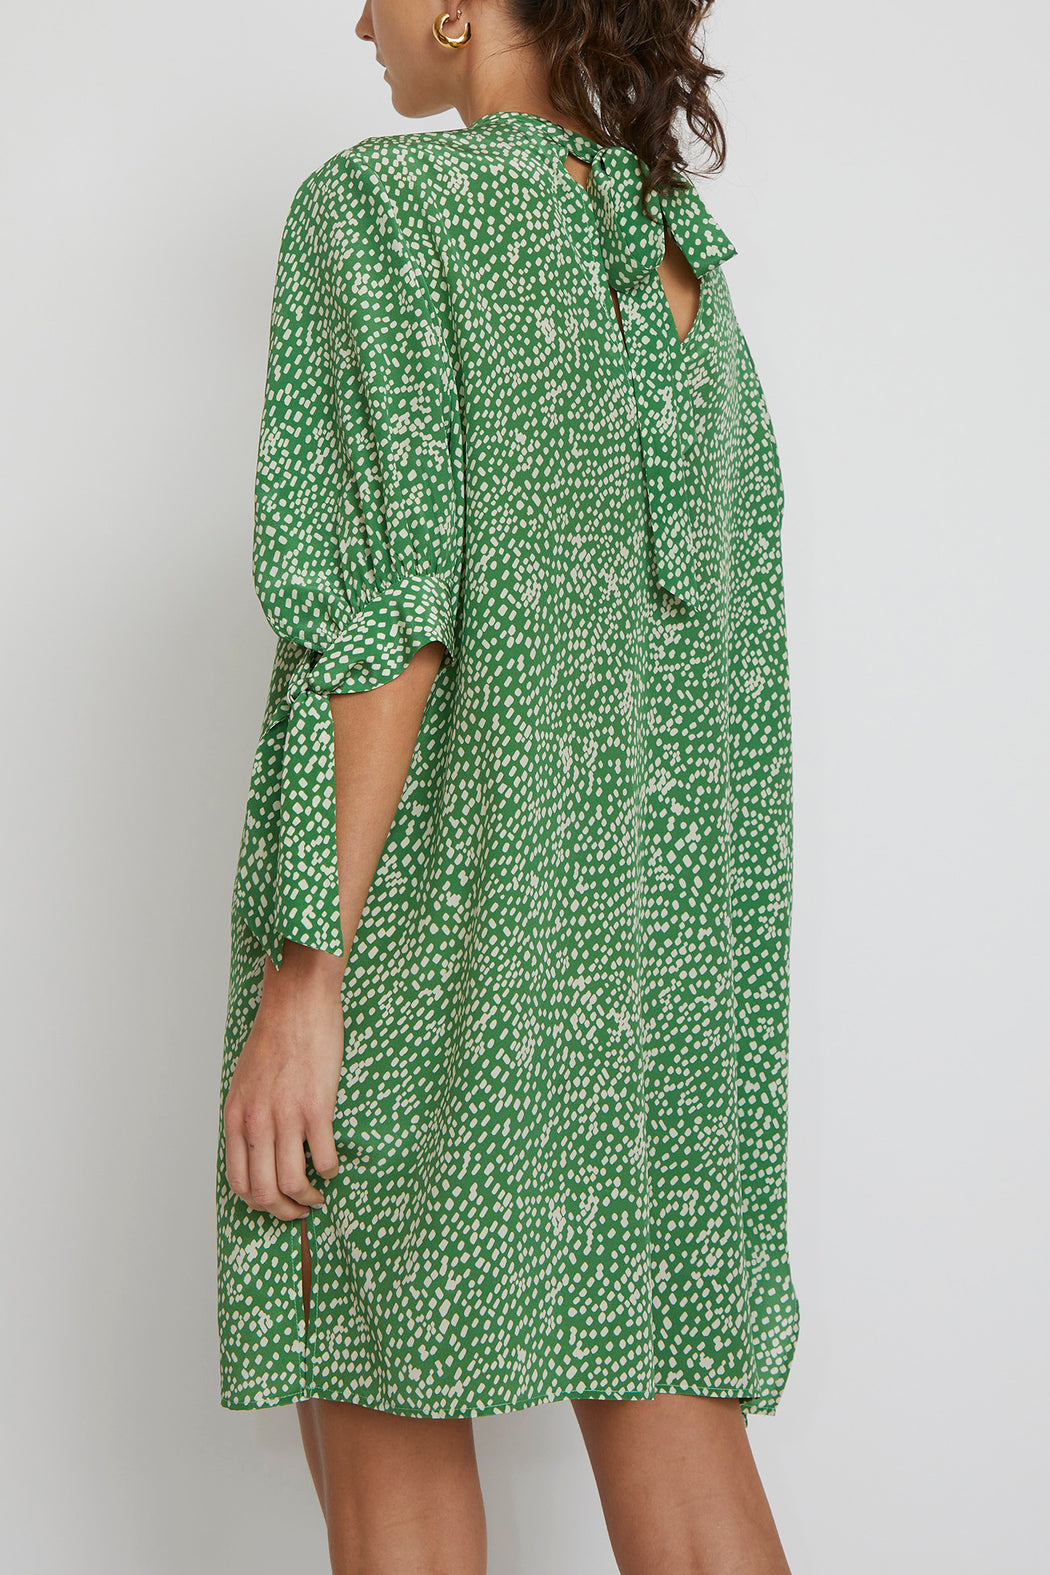 No.6 Adelaide Dress in Green with White Dots Crinkle Silk